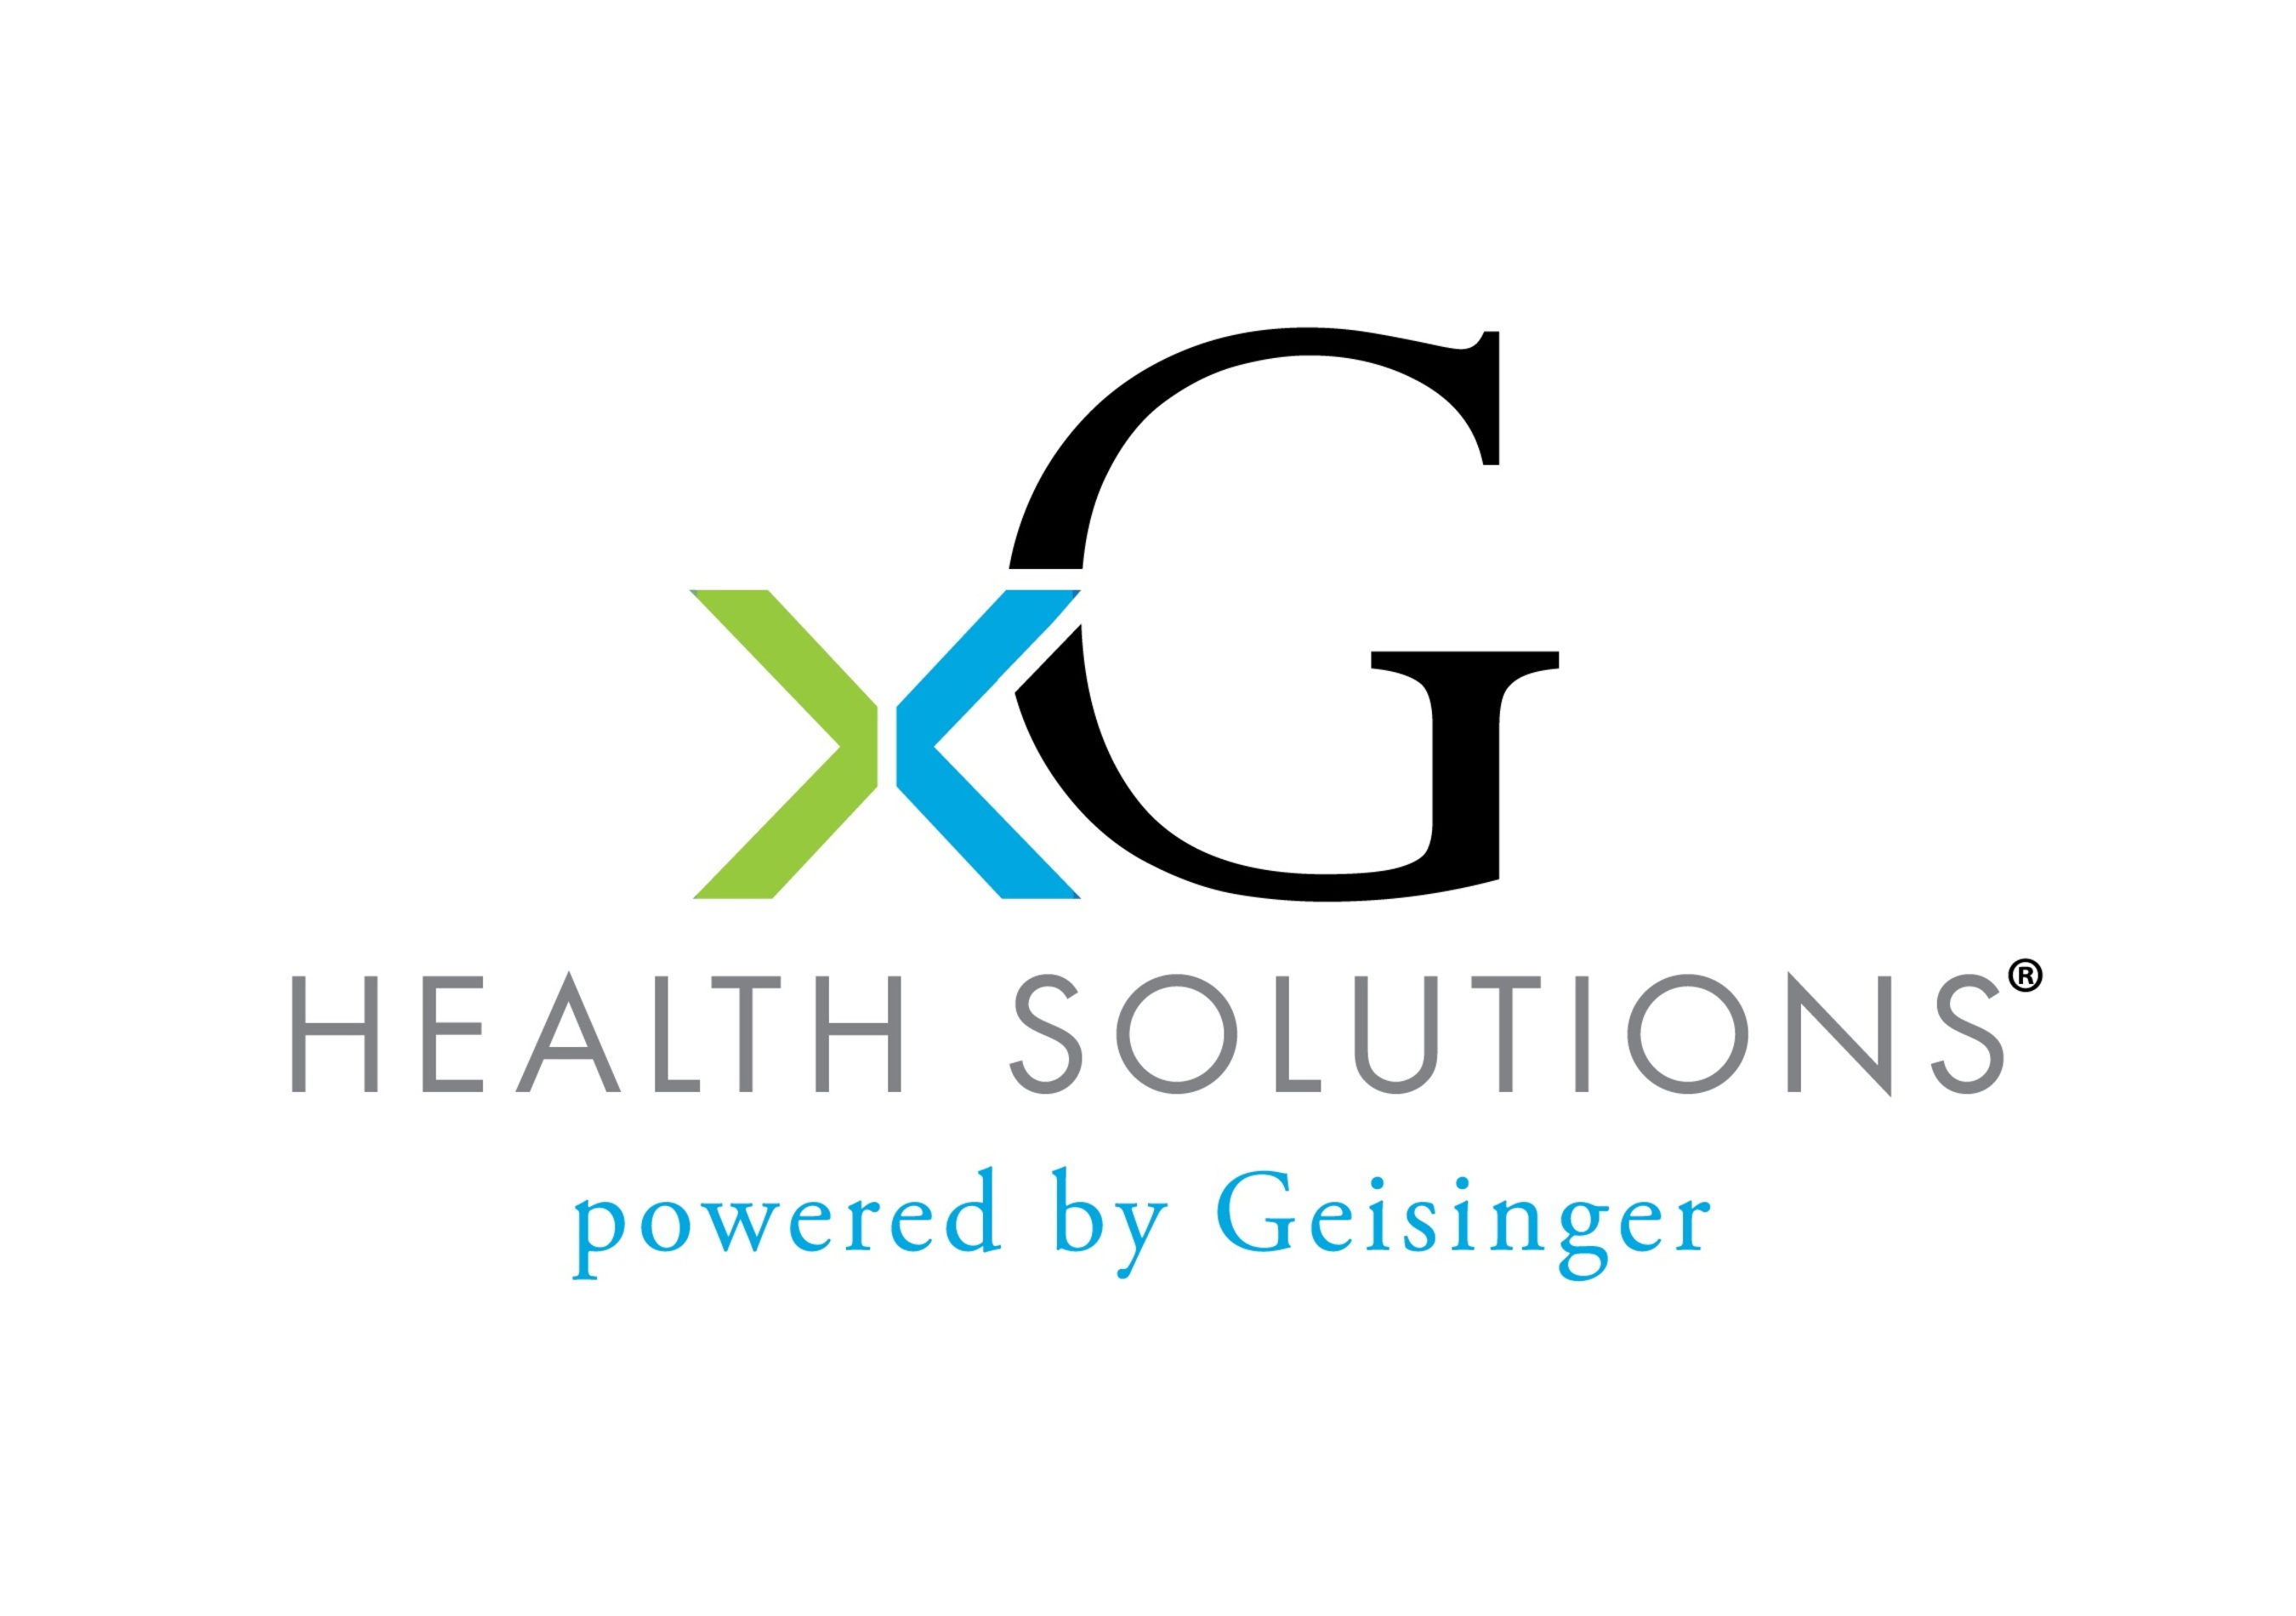 EnrG, a New Apps Suite from Geisinger and xG Health.